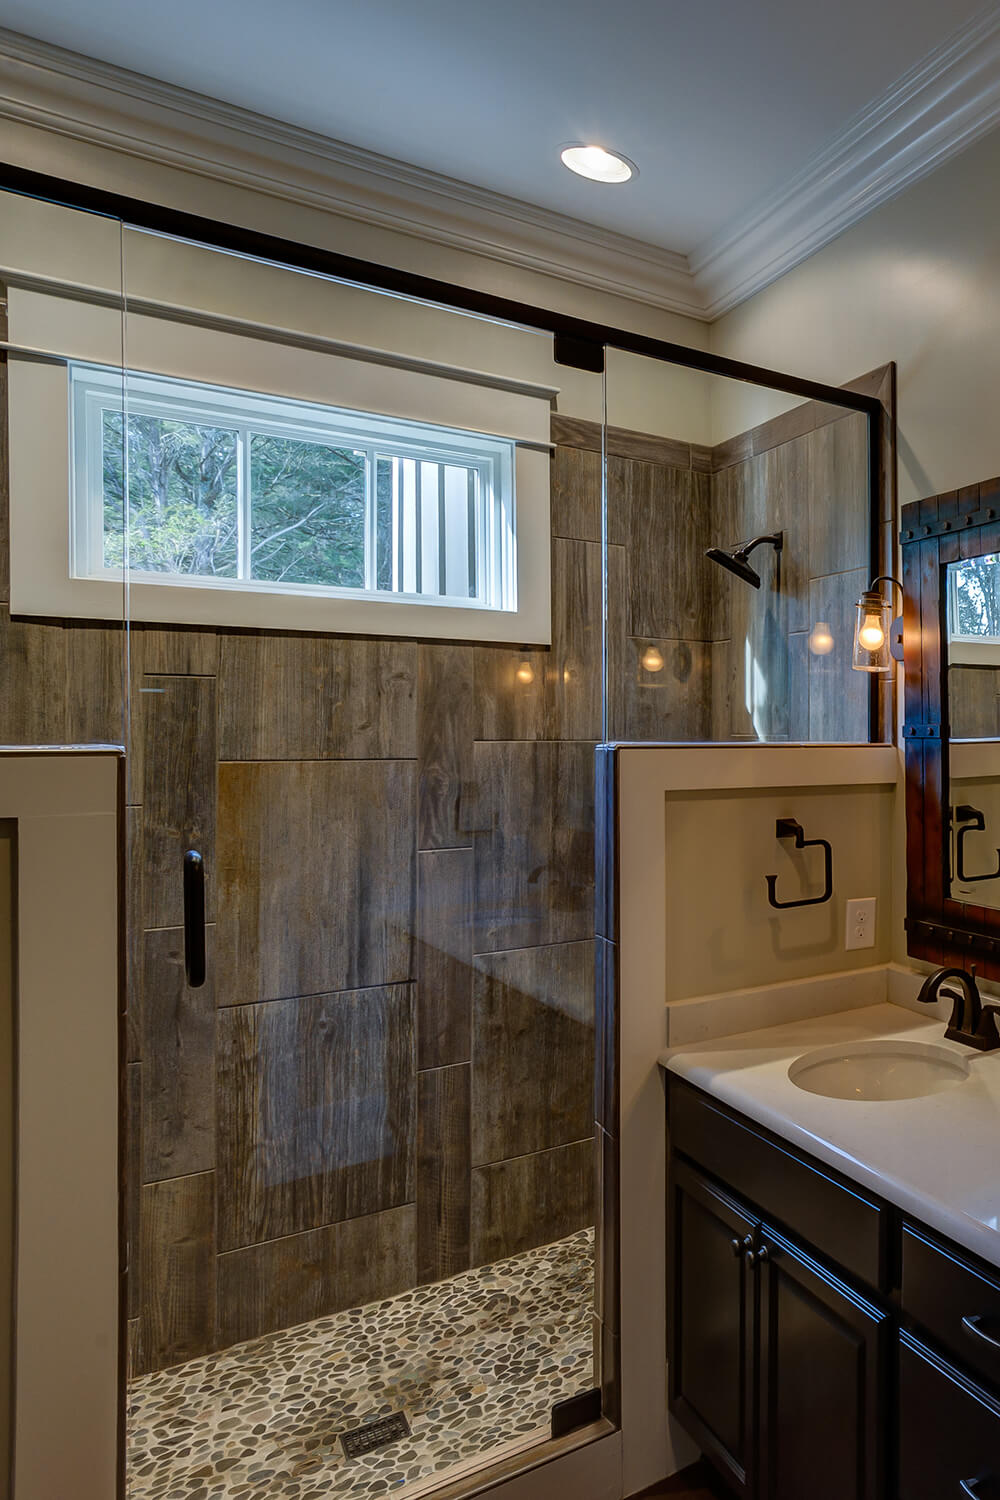 Wood finished tiles in the glass shower and a river rock floor gives this space a more rustic but luxurious feel that other rooms of the house. The river rock floor bring the stone look used around the house into this room too.